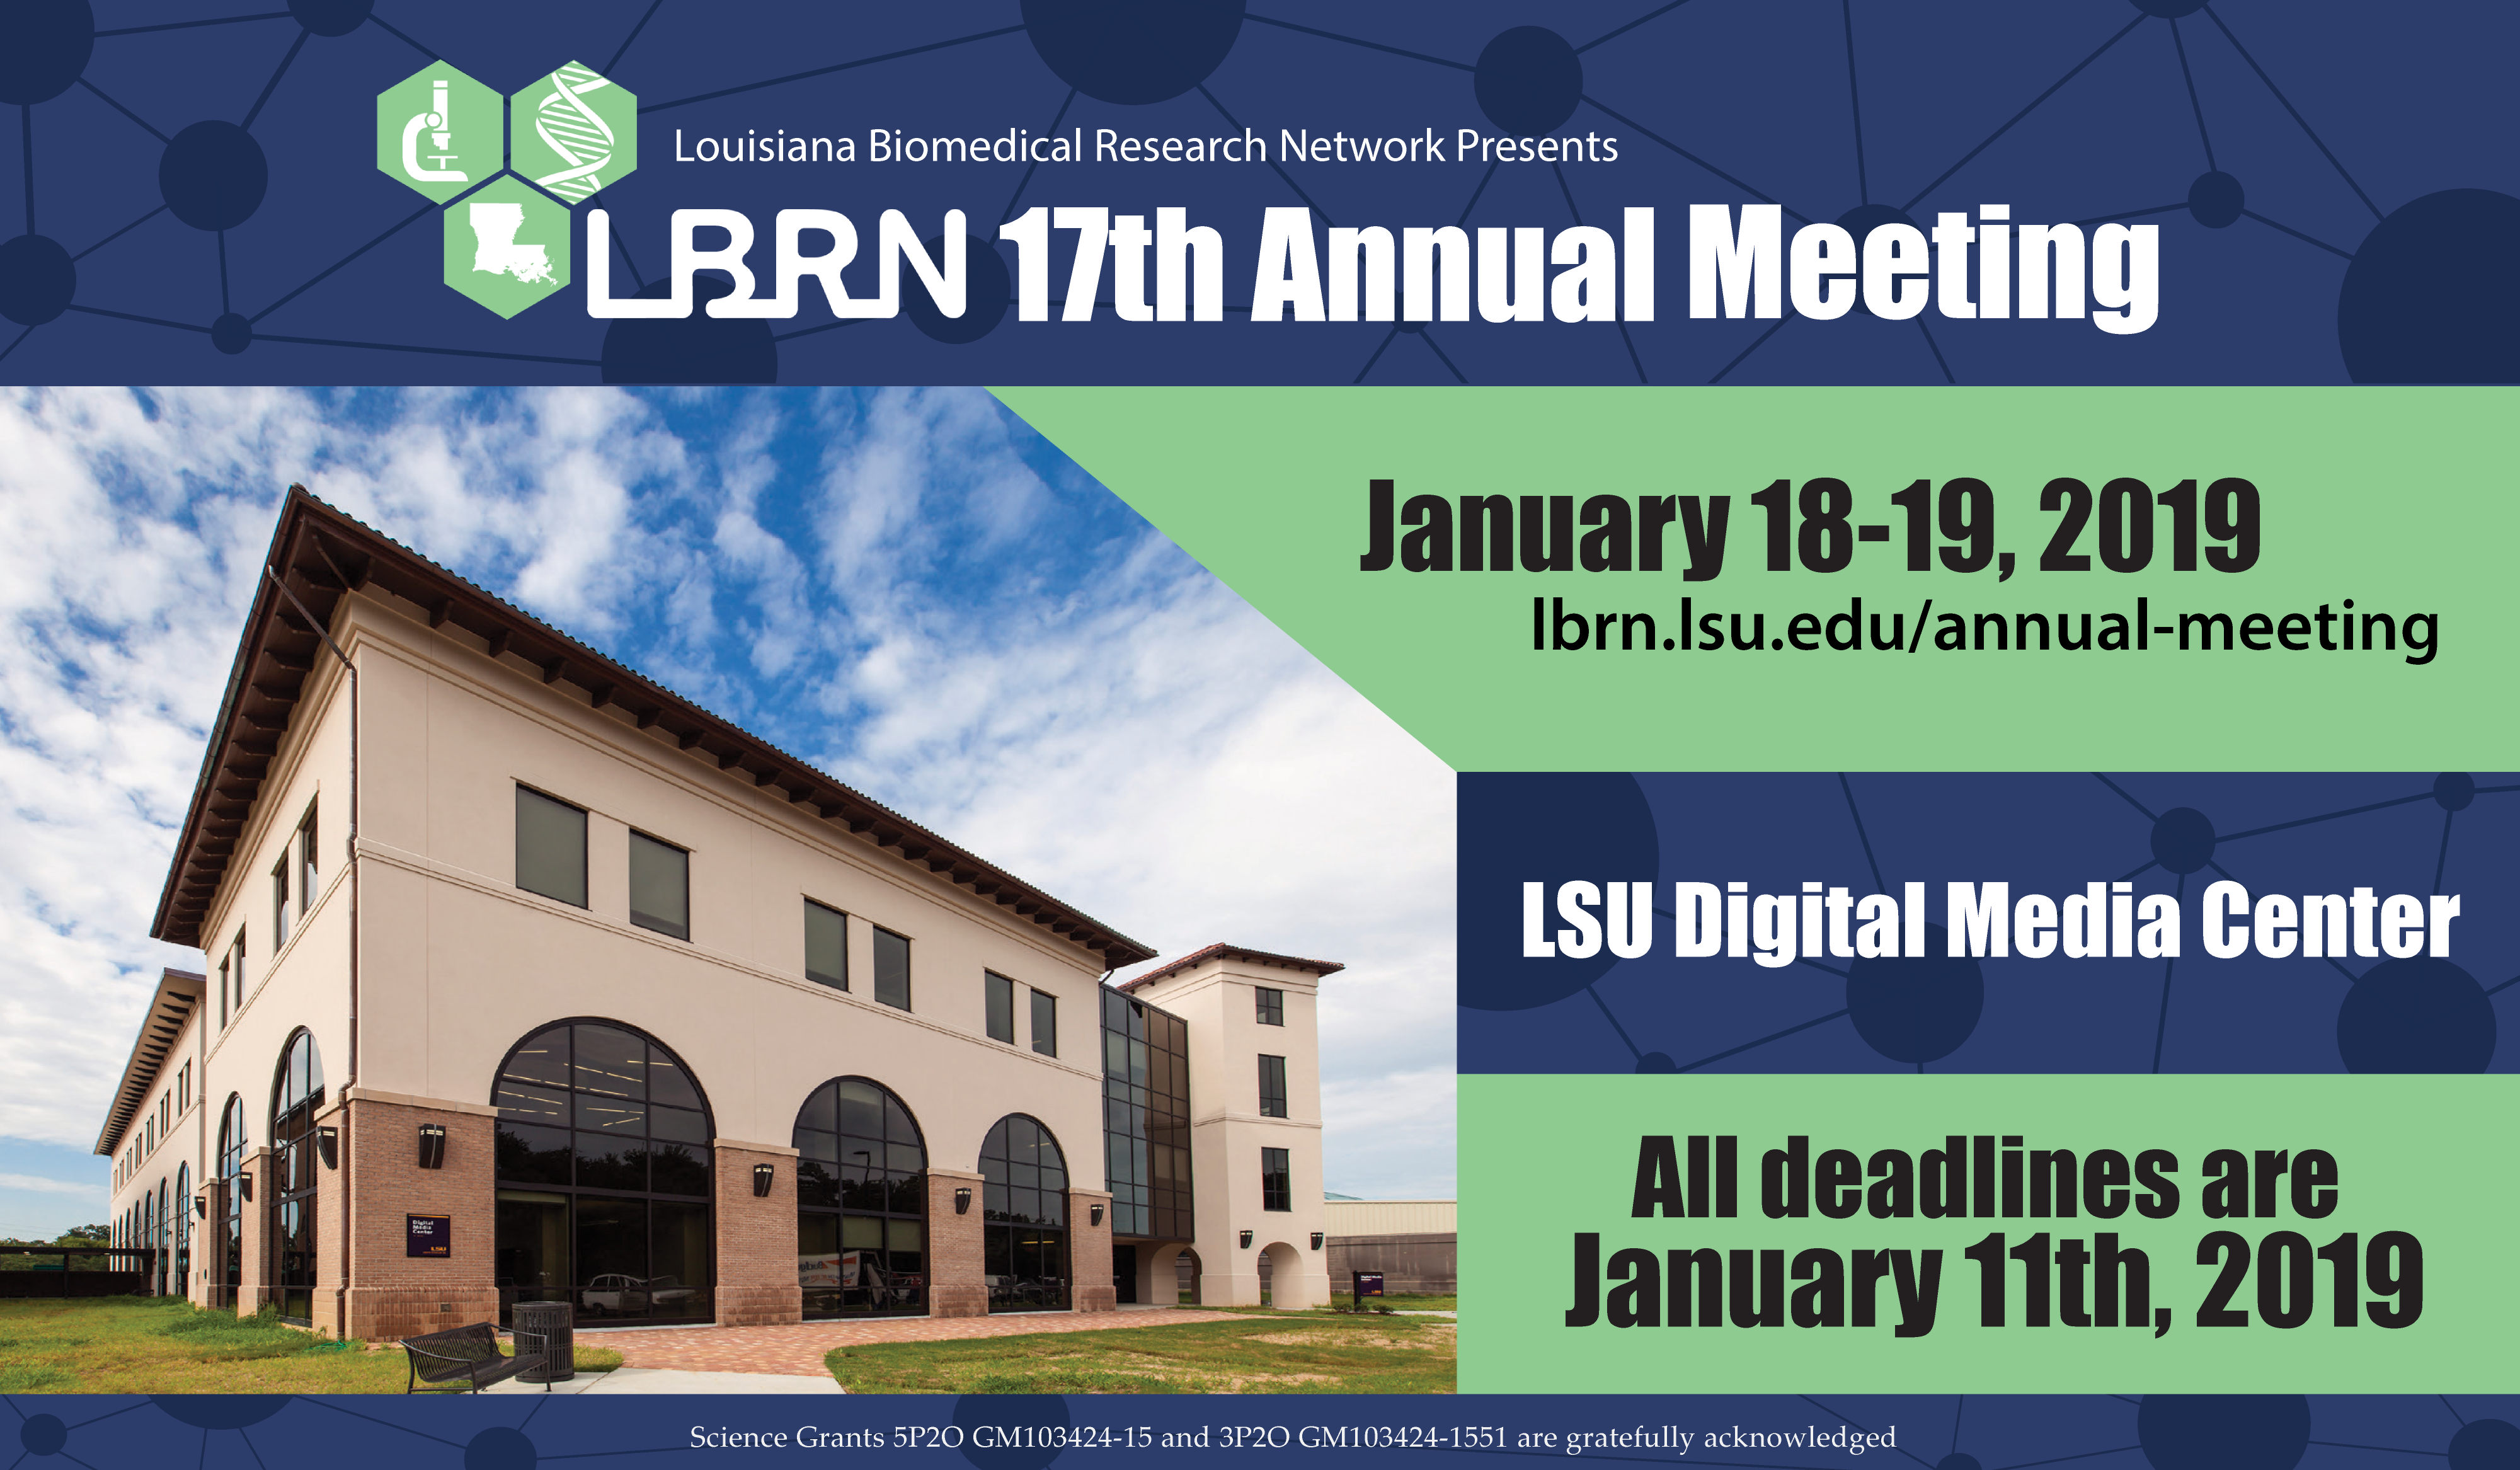 17th LBRN Annual Meeting